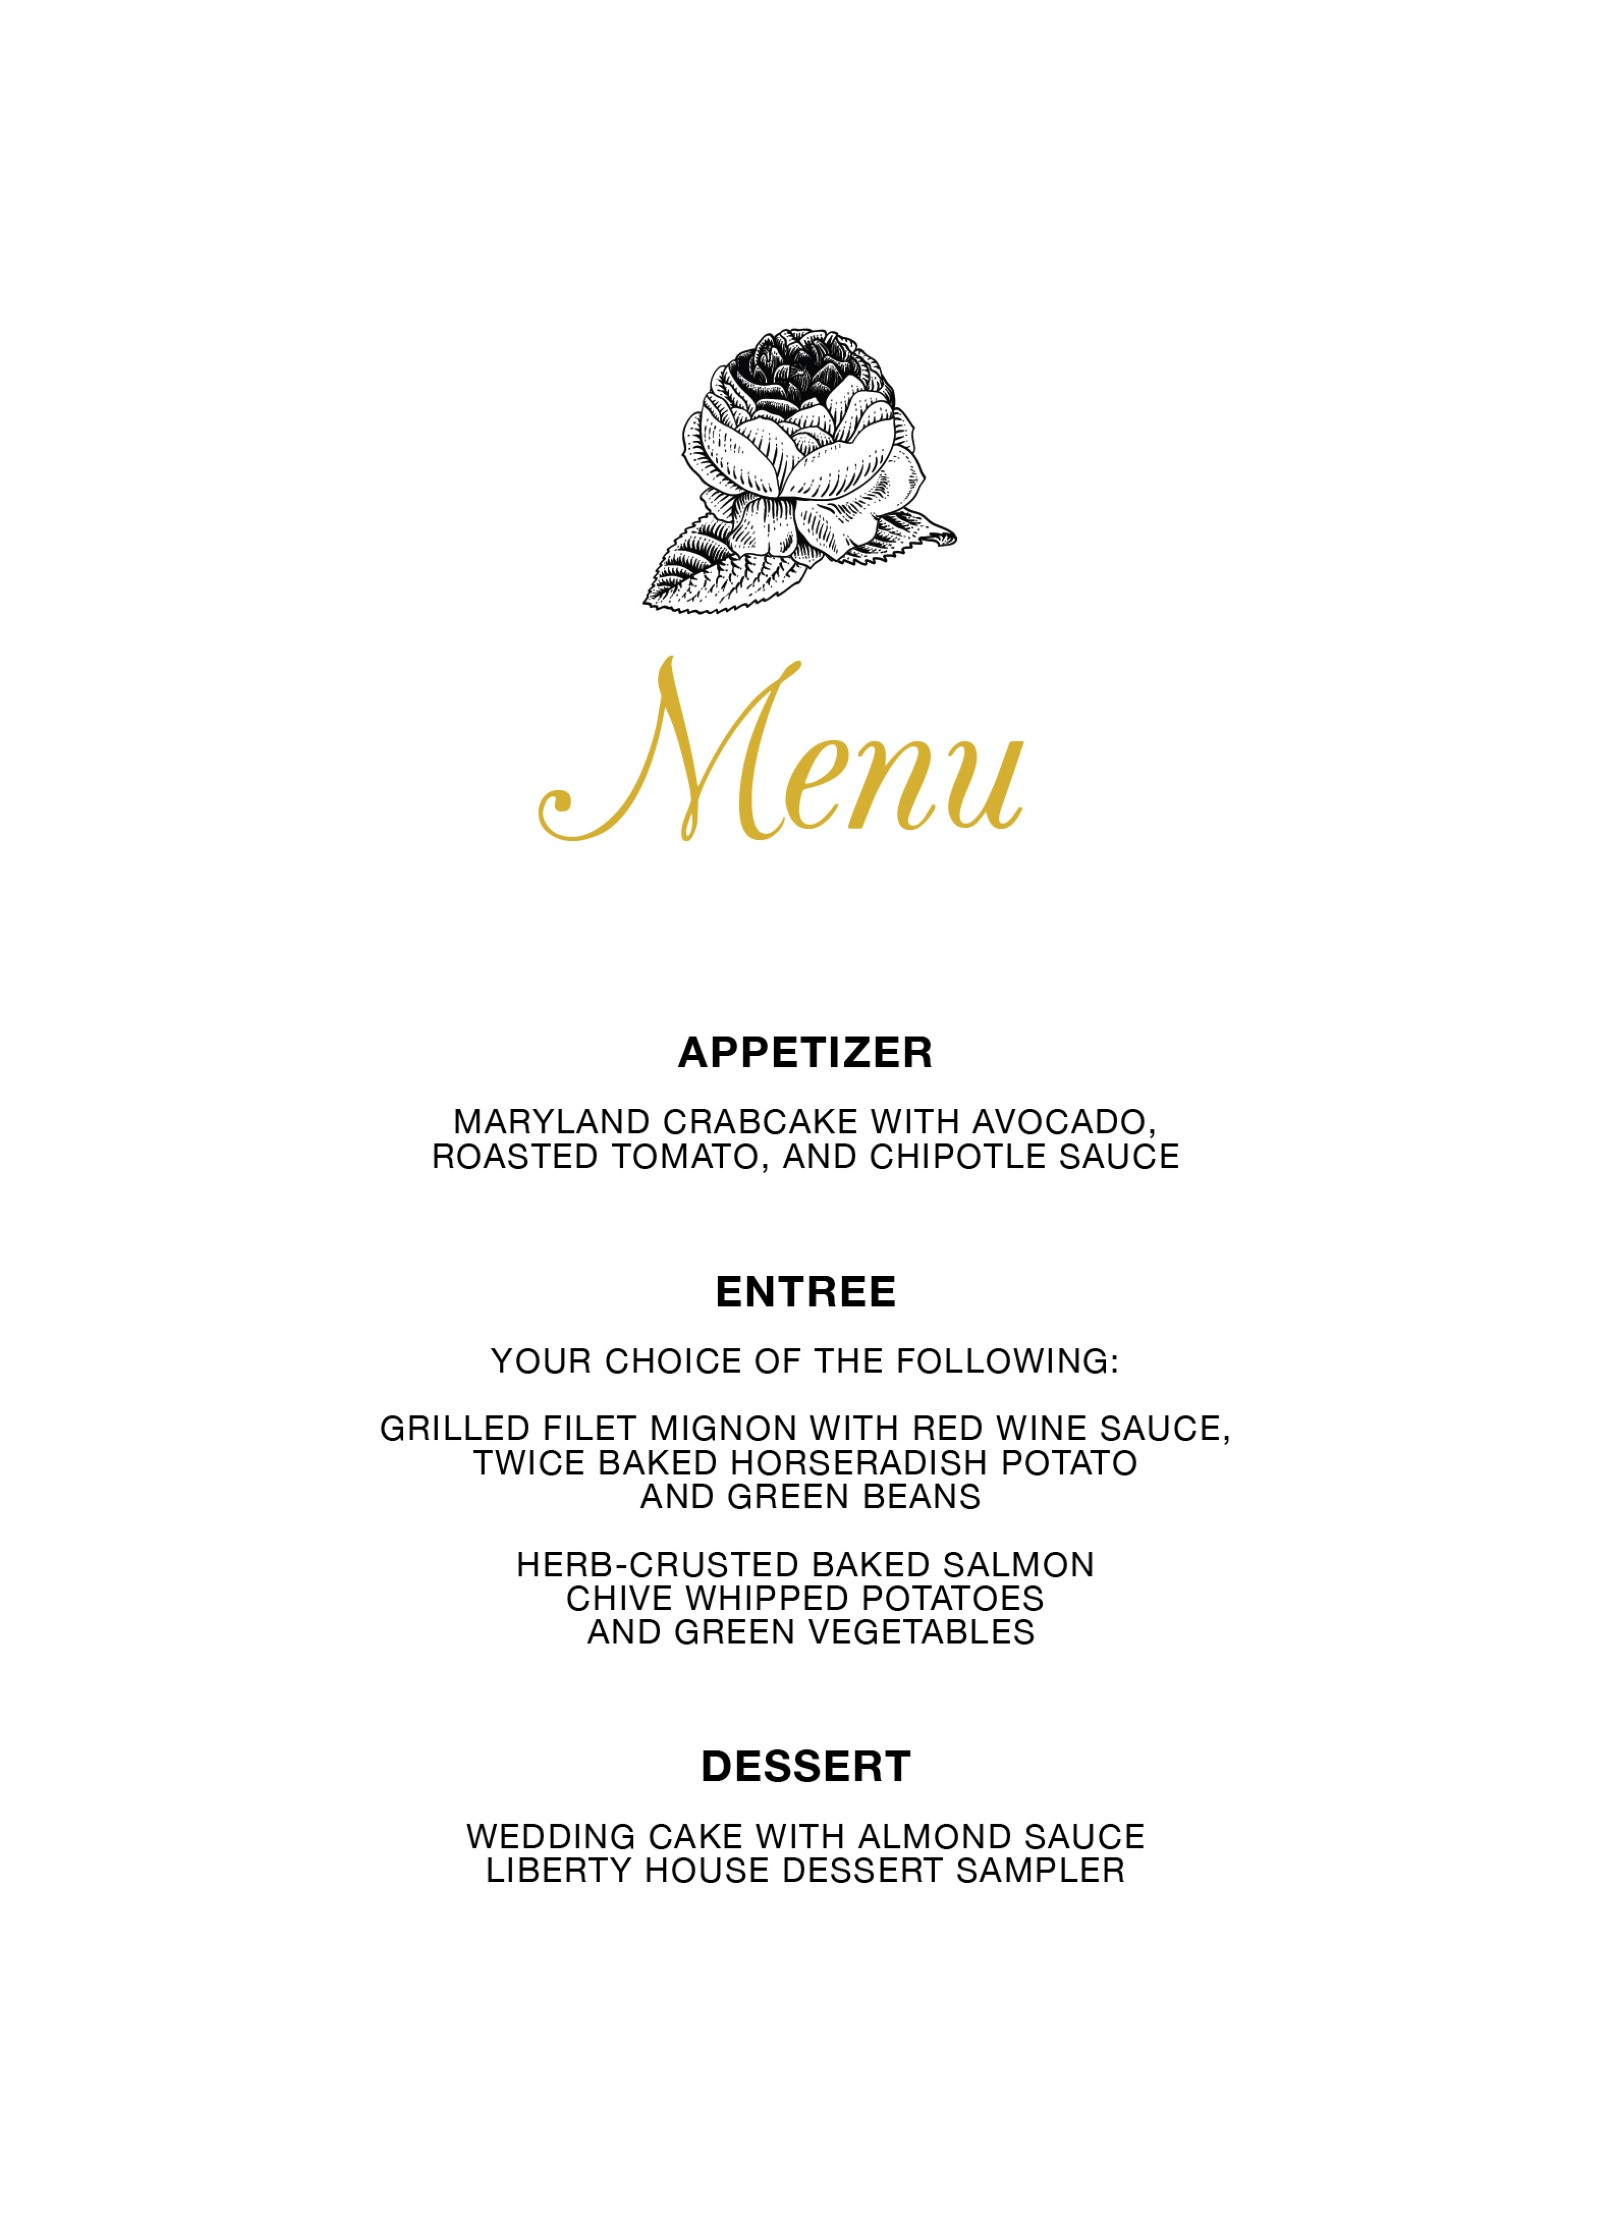 Monochrome Floral - Menu Card